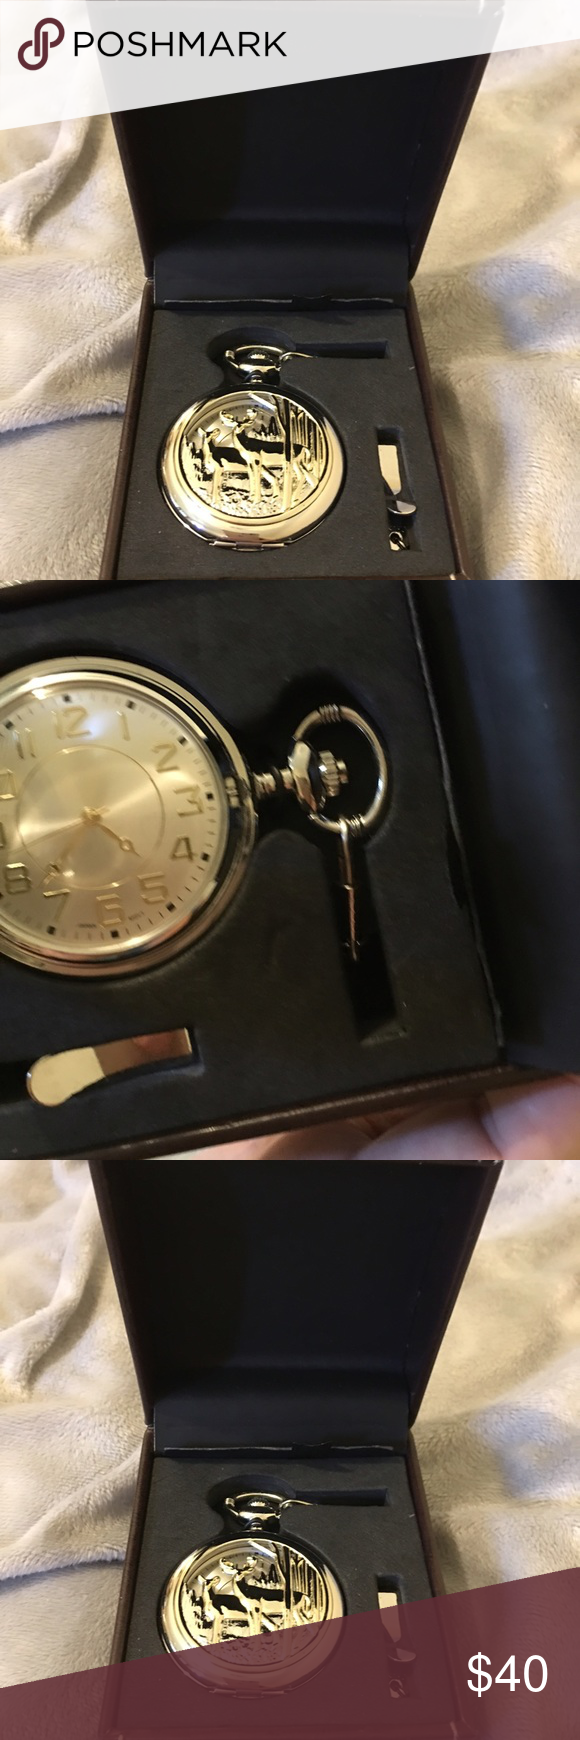 New mans pocket watch Brand new men's pocket watch the picture is etched  the paperwork is under the watch it would make a very nice for Father's Day gift Accessories Watches